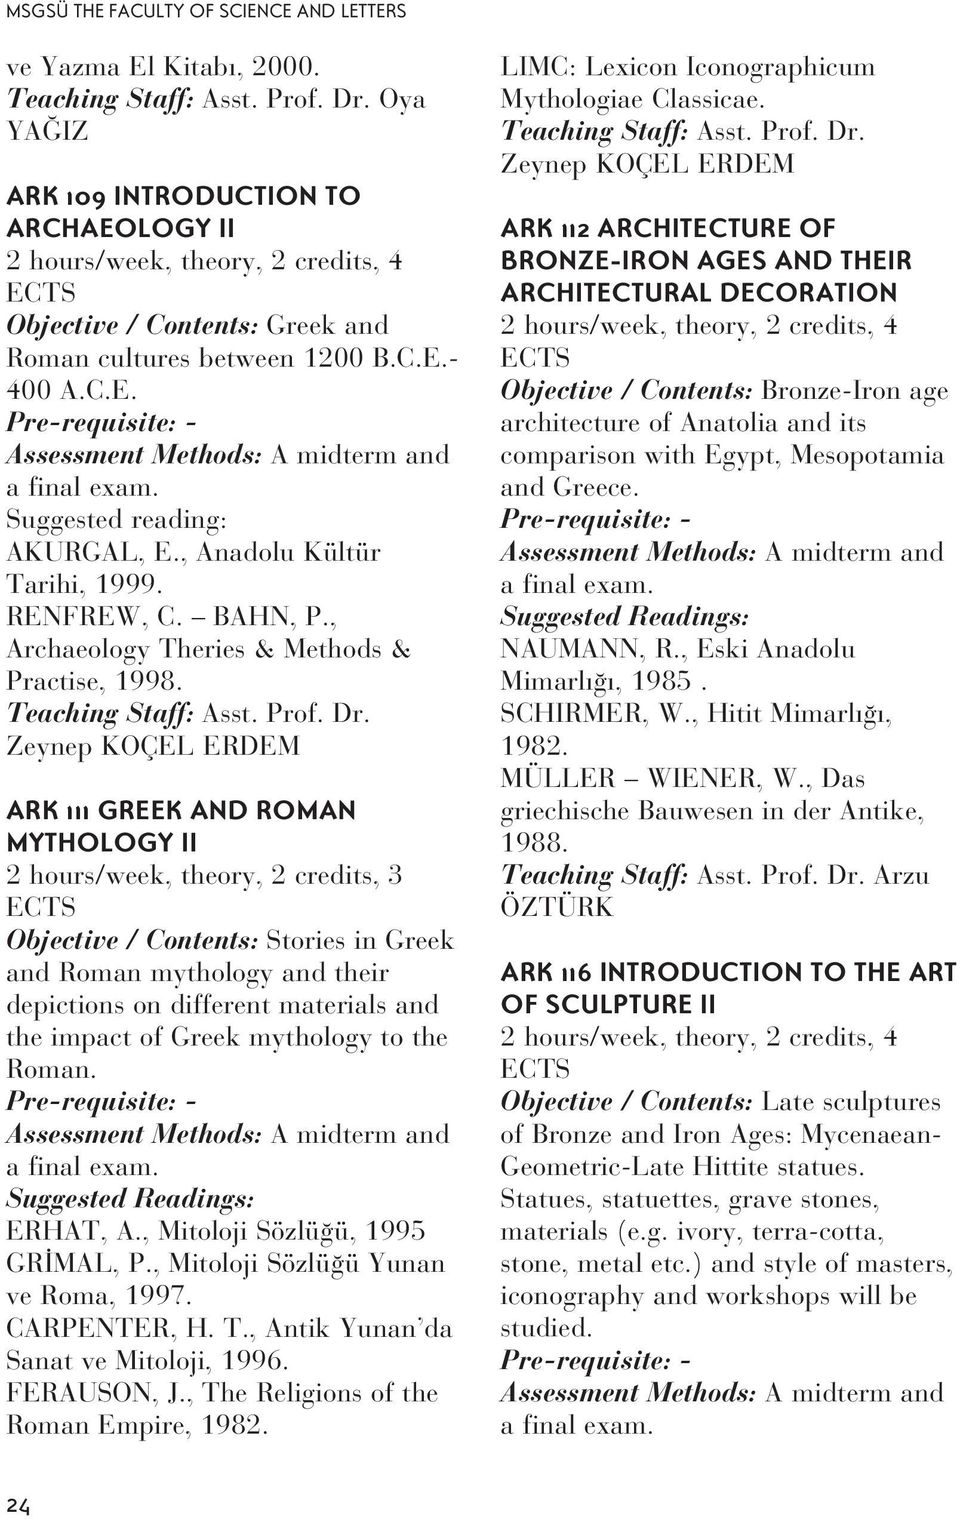 Suggested reading: AKURGAL, E., Anadolu Kültür Tarihi, 1999. RENFREW, C. BAHN, P., Archaeology Theries & Methods & Practise, 1998. Teaching Staff: Asst. Prof. Dr.